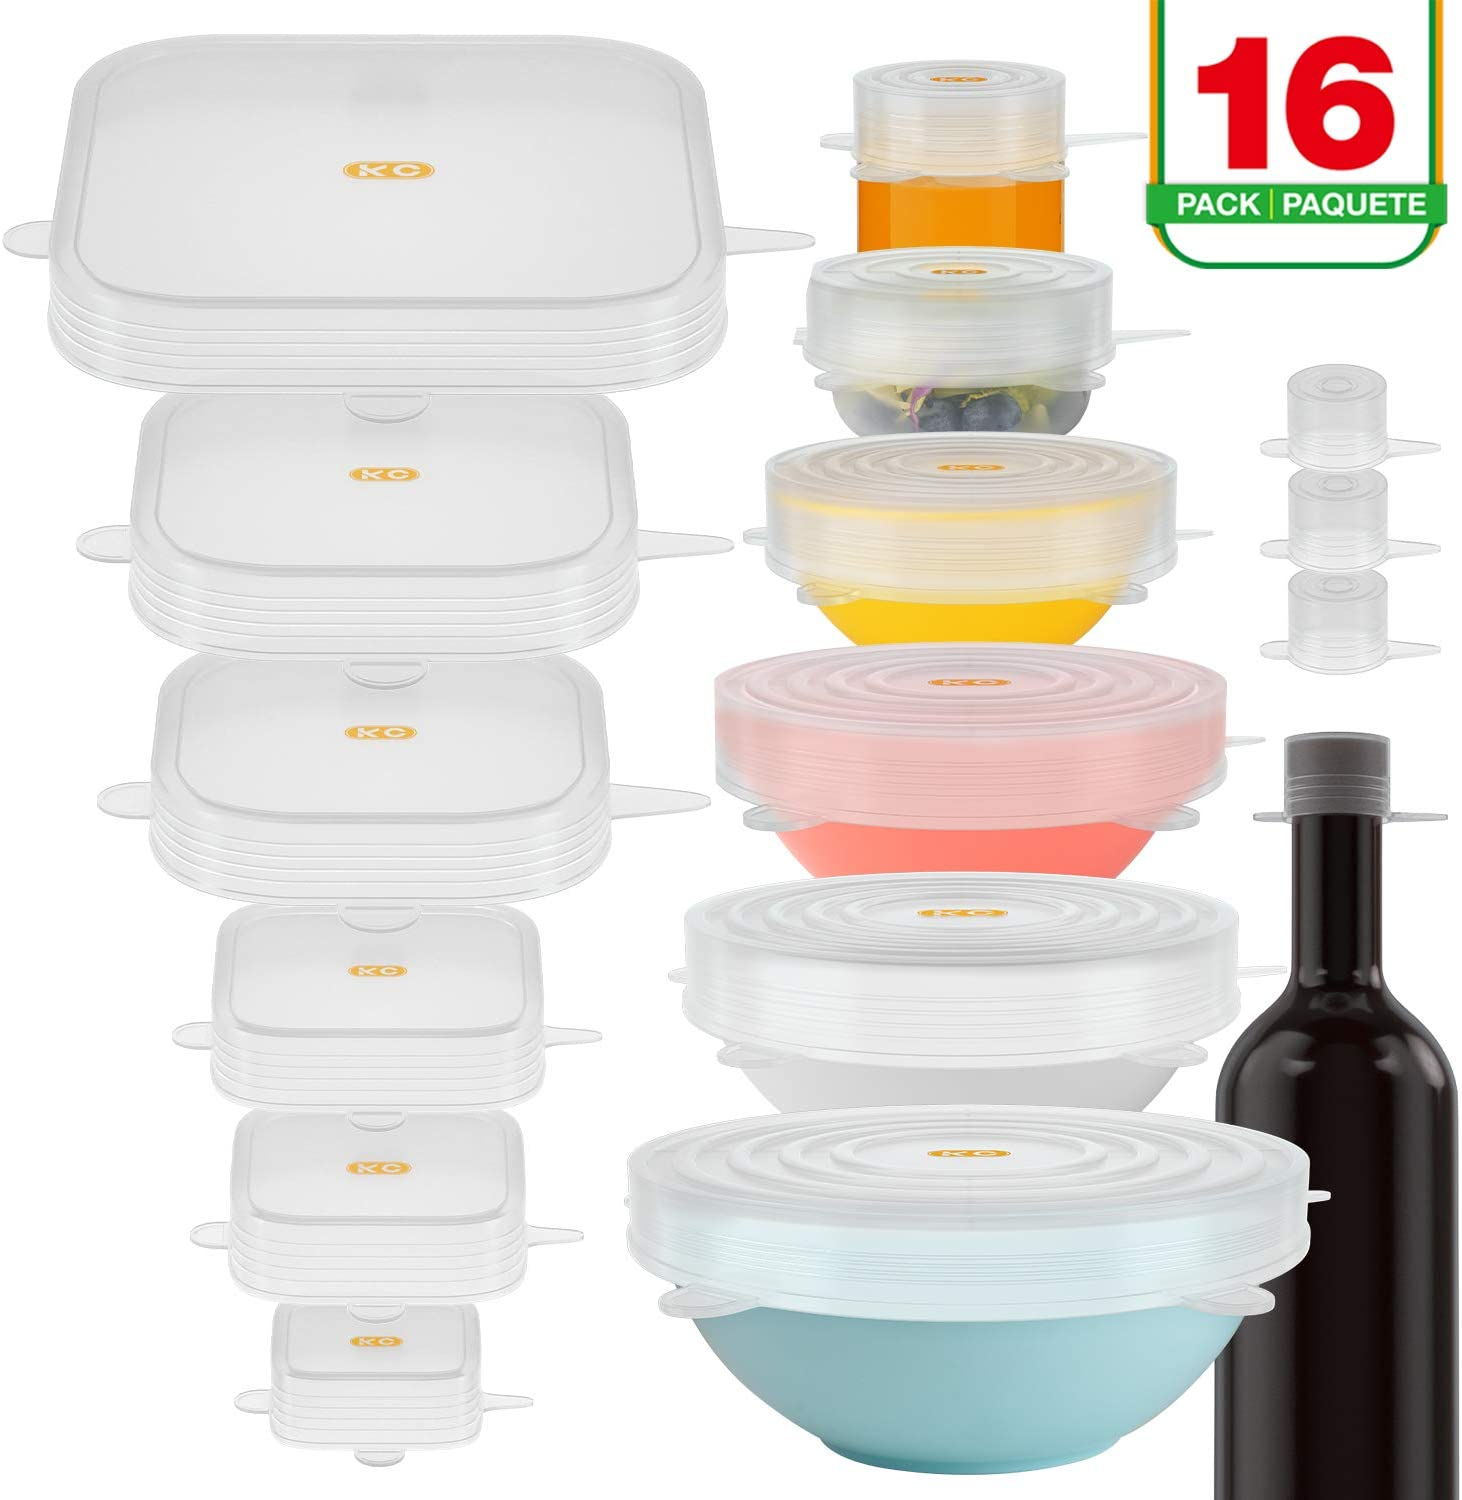 Miracle Silicone Stretch Lids 16 PACK Airtight Magic Stretchy Lids For Food Storage and Fresh Keeping, Reusable Silicone Food Covers Huggers For Containers Like Bowls Cans Jars Bottles Pots and Pans